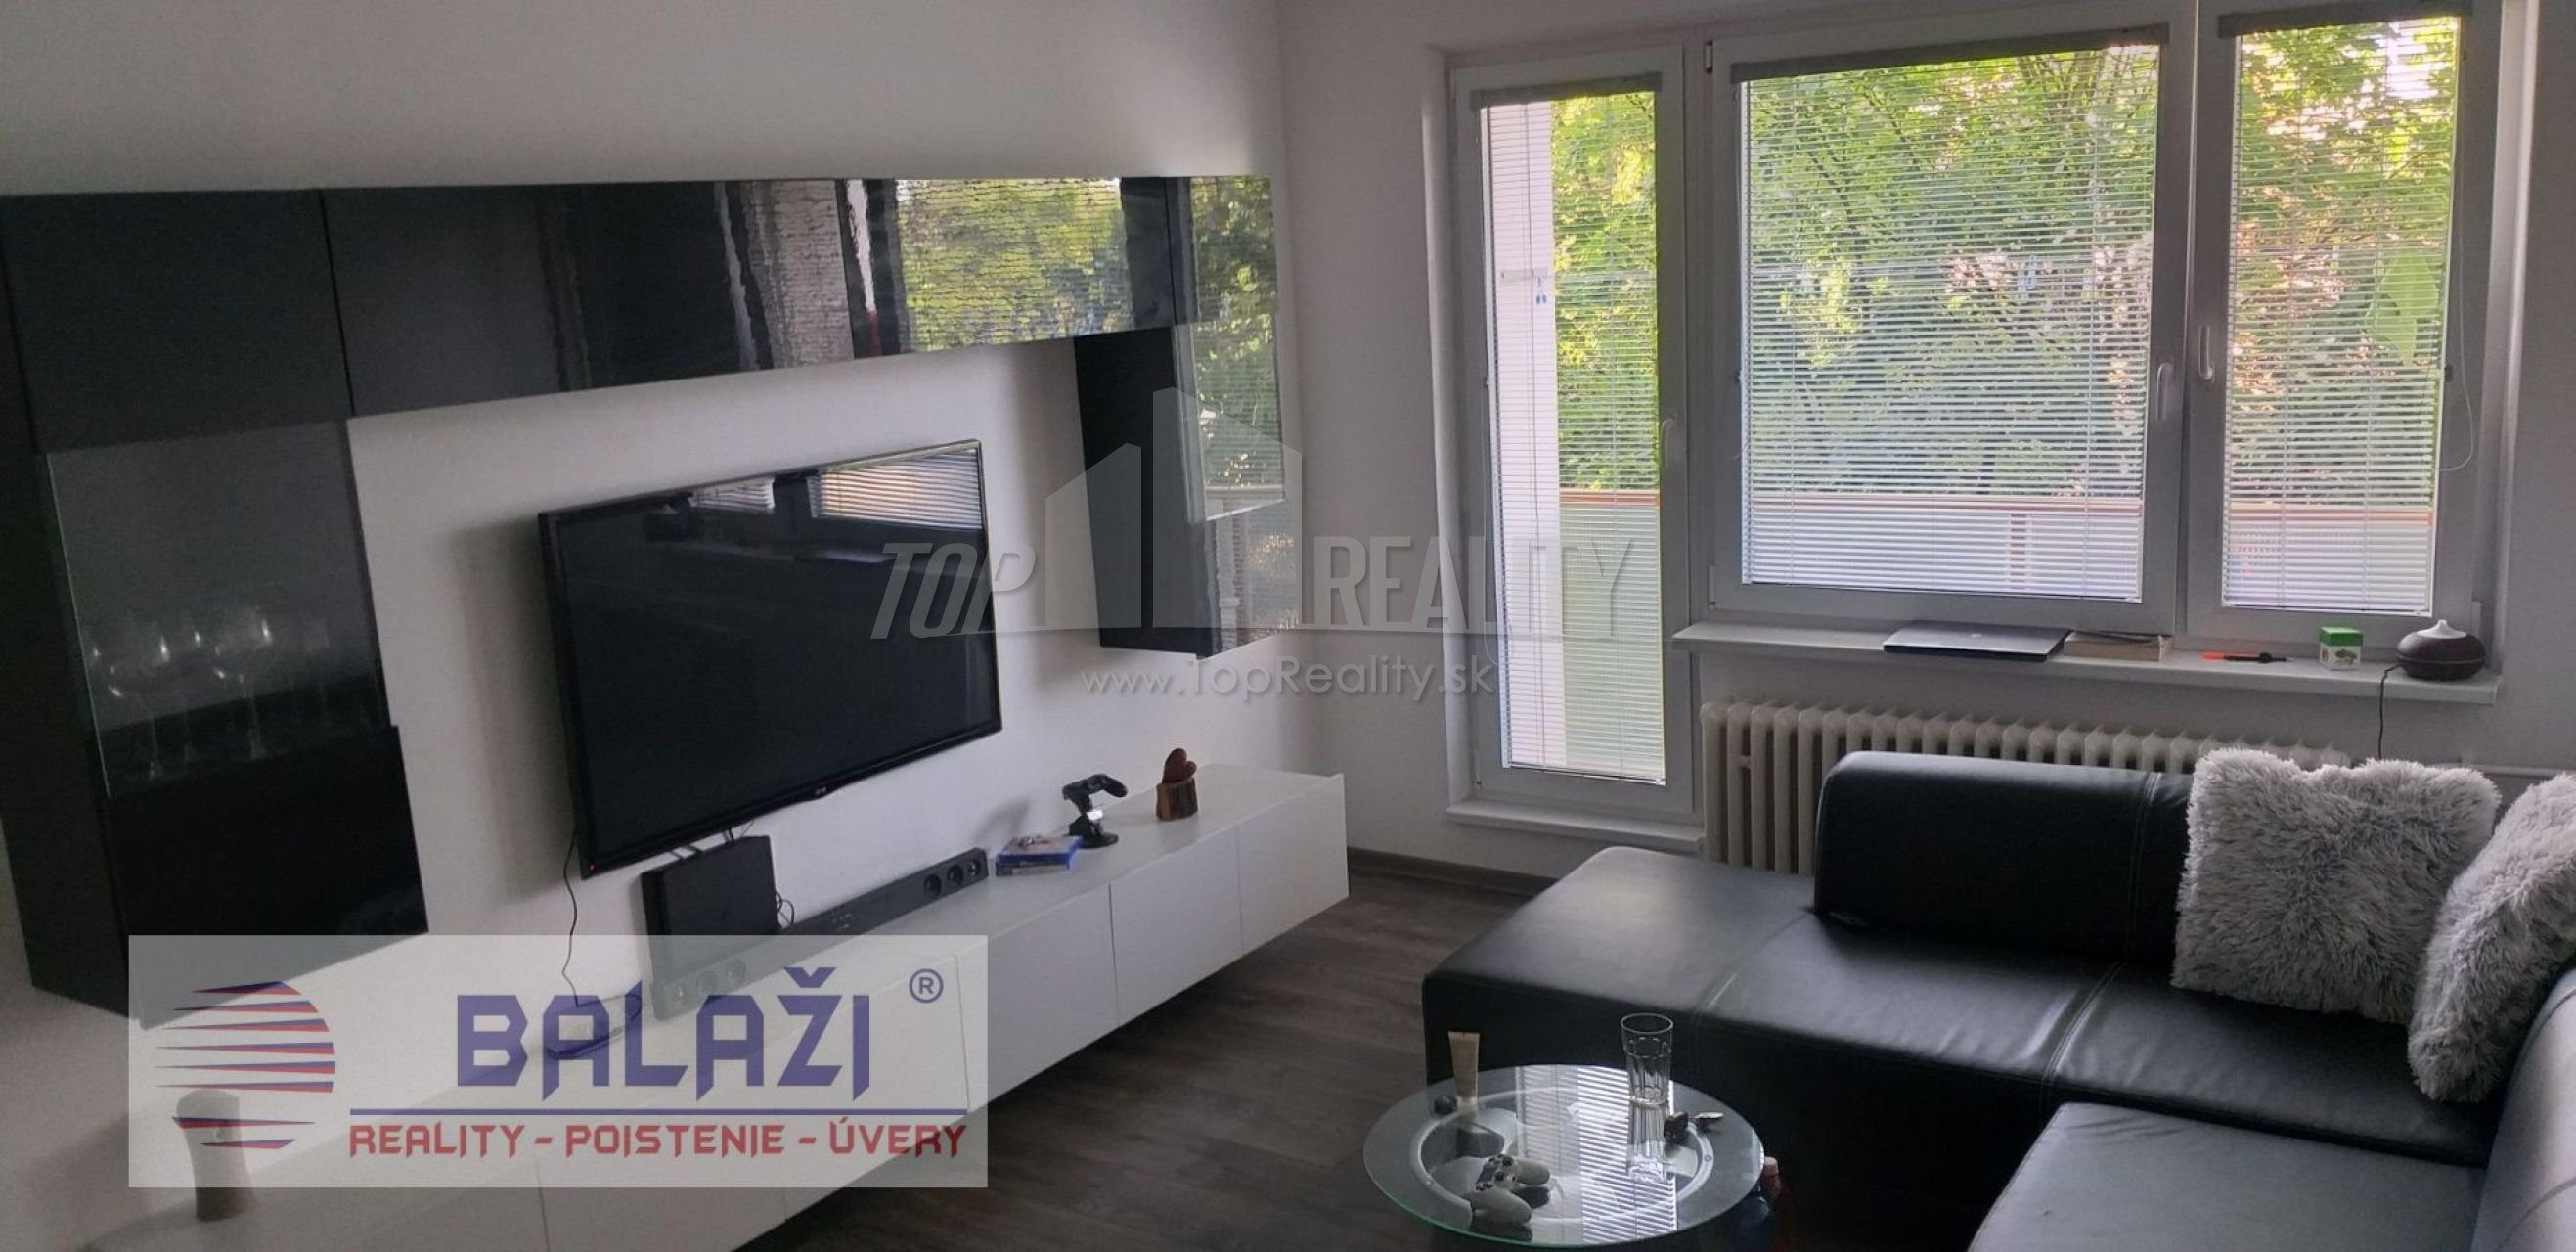 Martin fully furnished flat for rent in SEVER 70m2